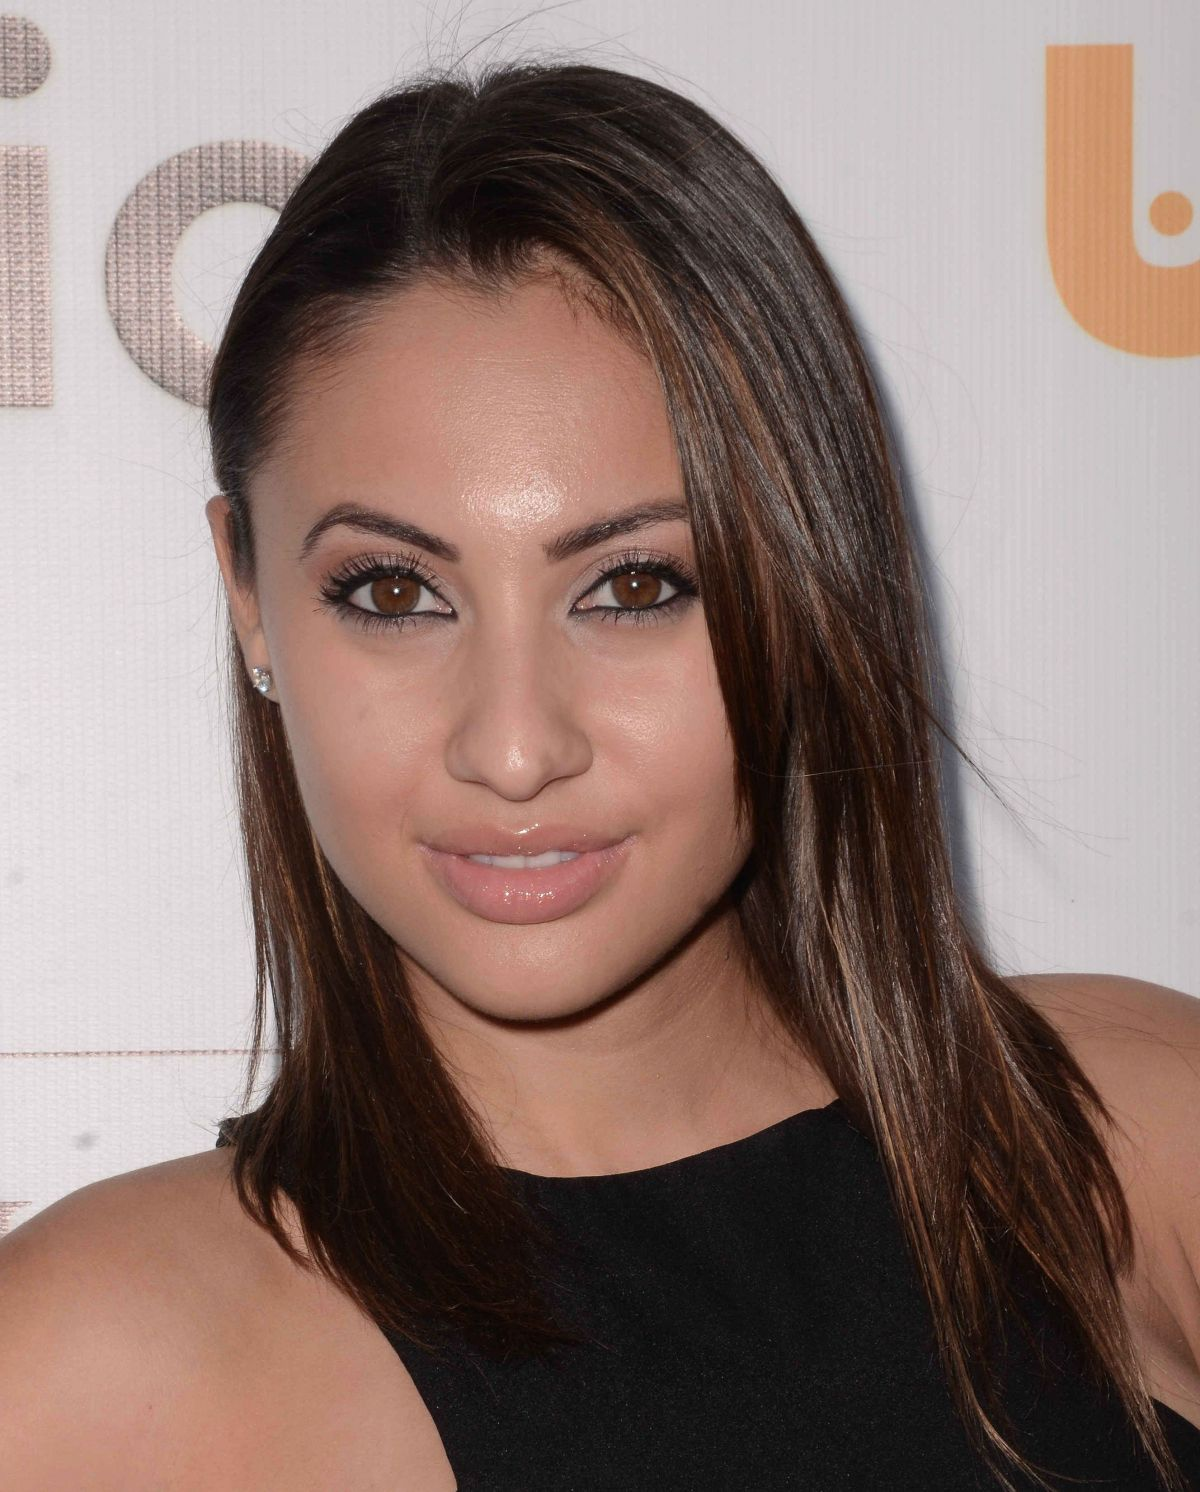 francia raisafrancia raisa insta, francia raisa tumblr, francia raisa listal, francia raisa body statistics, francia raisa, francia raisa instagram, francia raisa boyfriend, francia raisa and selena gomez, francia raisa height, francia raisa twitter, francia raisa 2014, francia raisa wiki, francia raisa bio, francia raisa wikipedia, francia raisa hot, francia raisa 2015, francia raisa movies, francia raisa net worth, francia raisa dancing, francia raisa weight